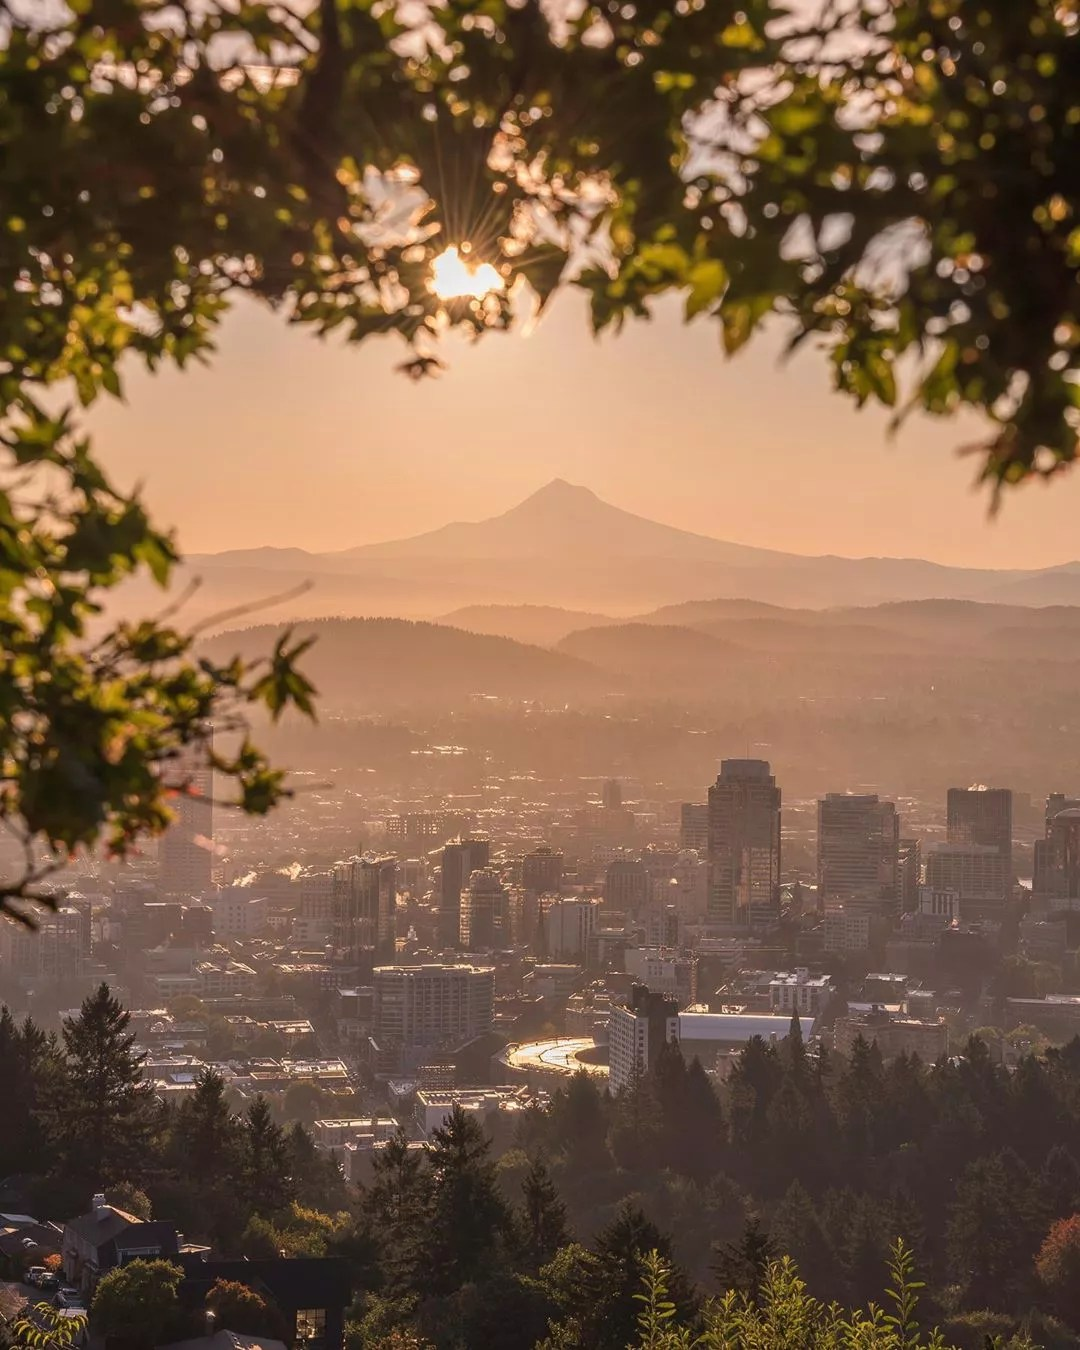 Skyline of tall buildings and mountains during sun rise in Portland, OR. Photo by Instagram user @50shadesofpnw